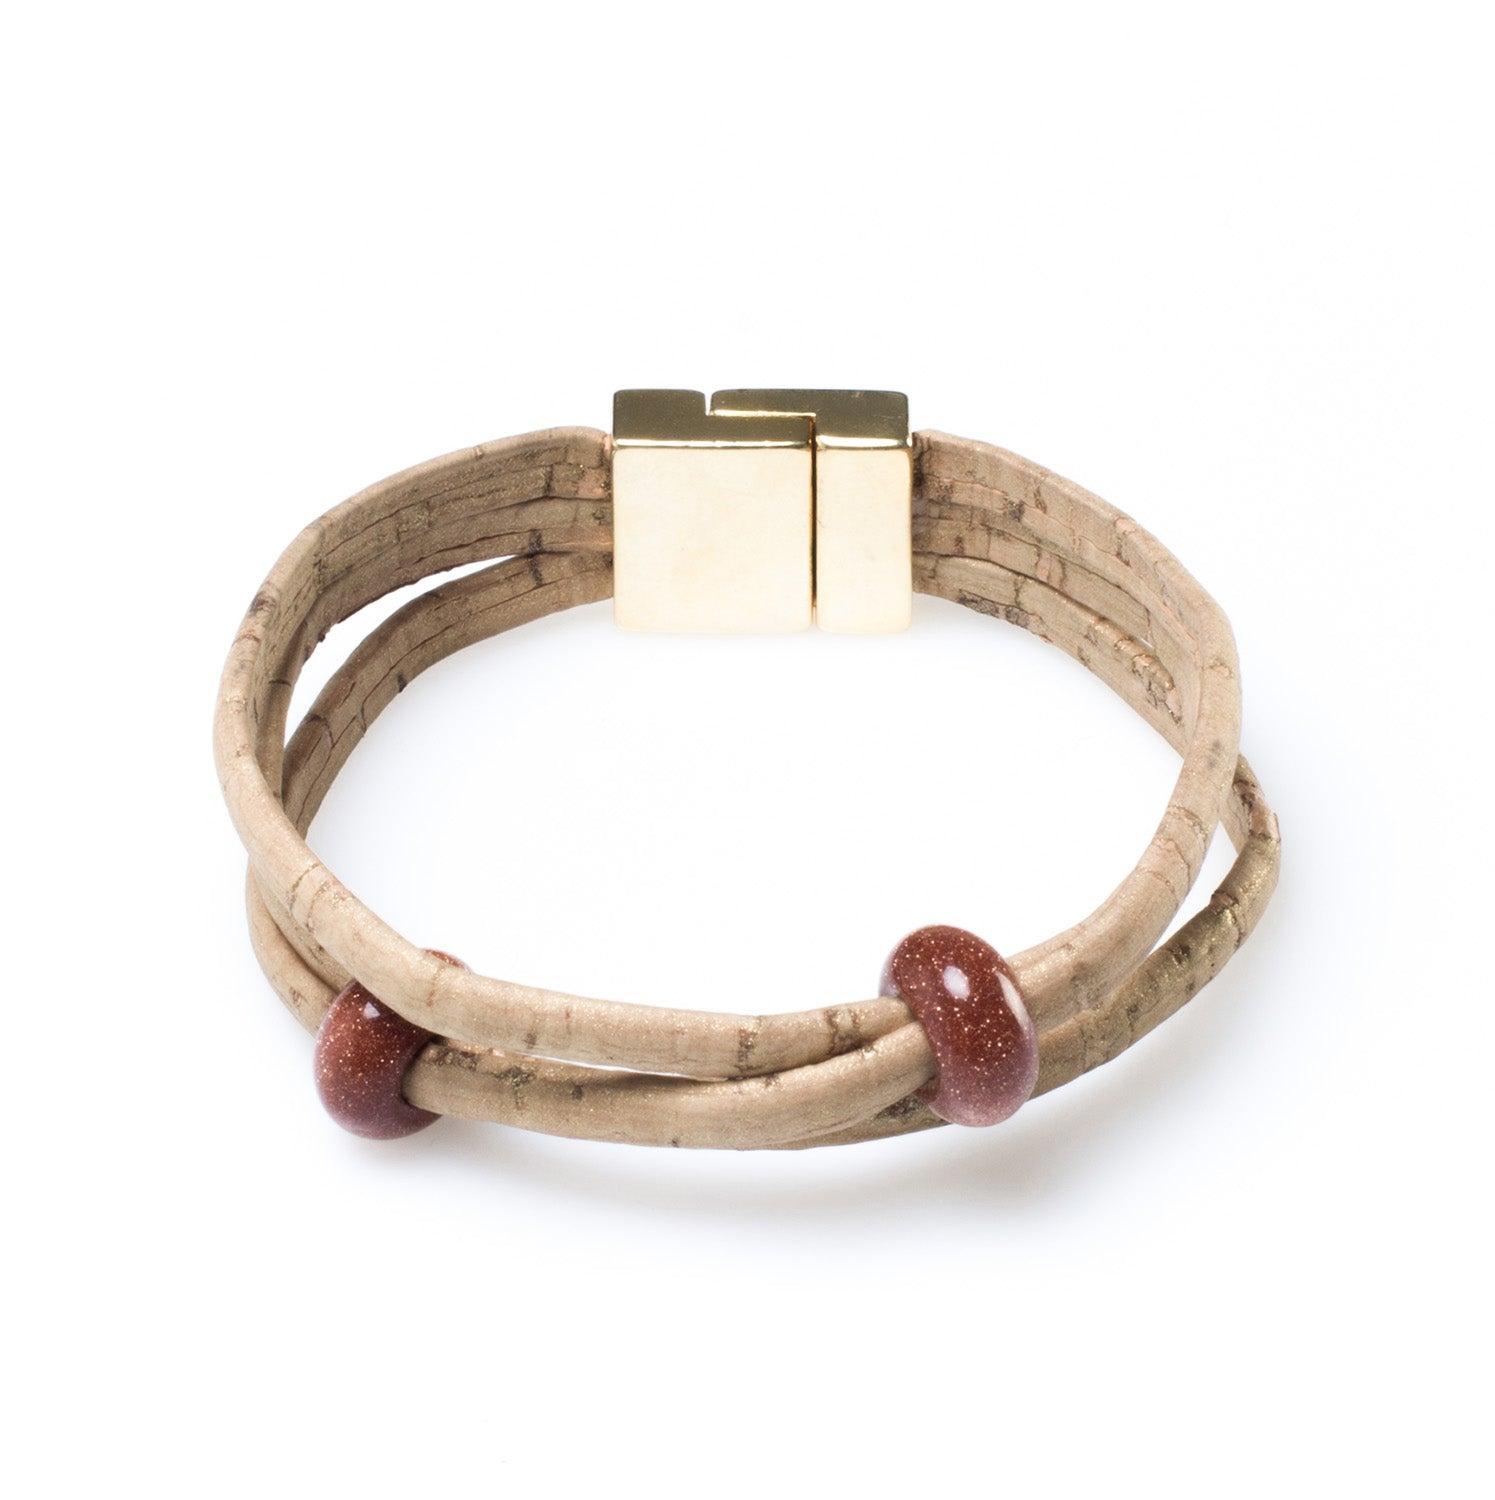 Red Bead Cork Bracelet | HowCork - The Cork Marketplace